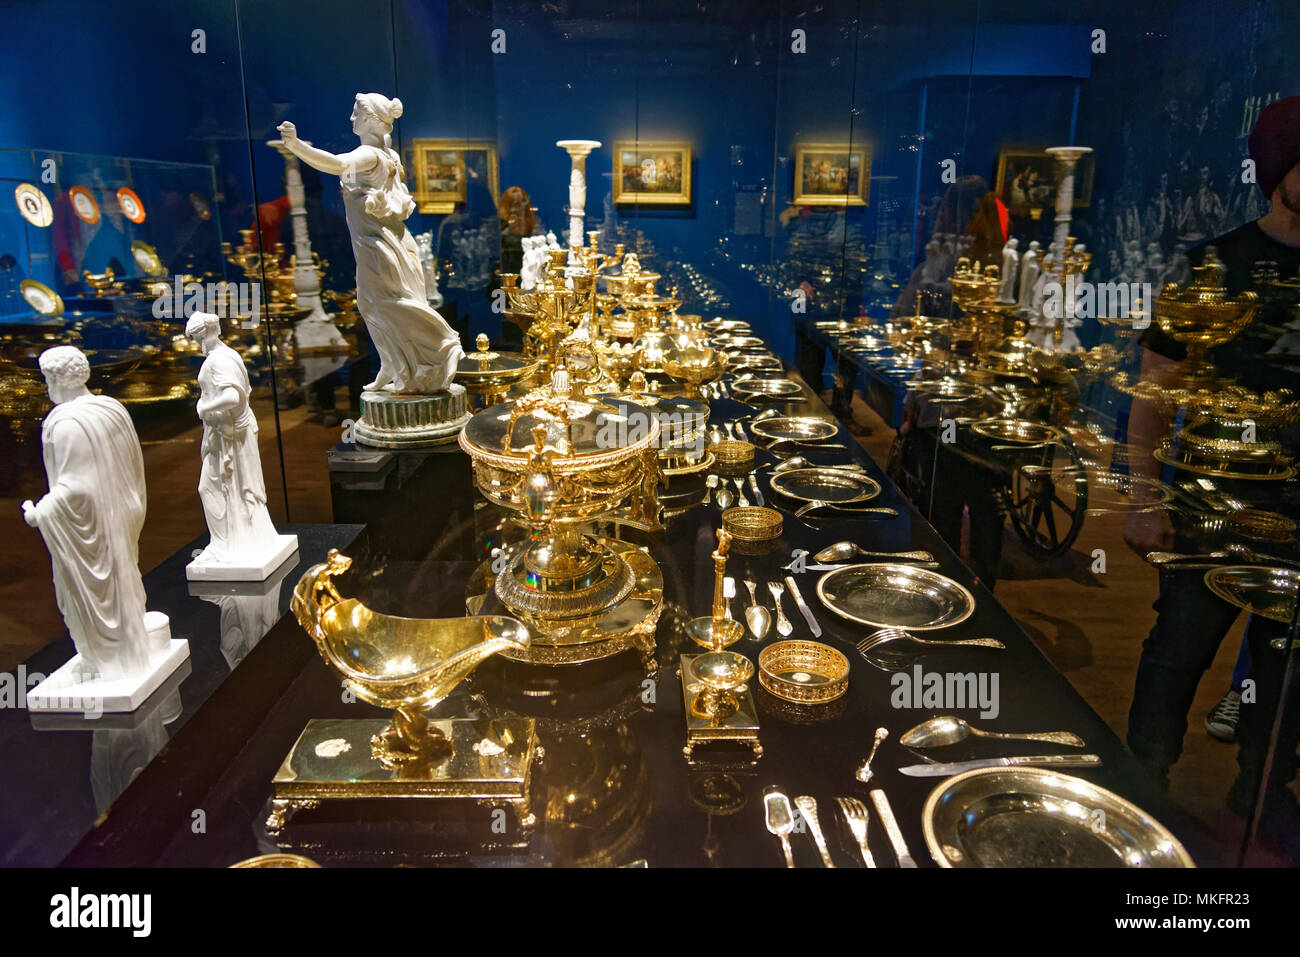 Dinner service from Napoleon's wedding feast in an exhibition in Montreal's Fine Arts Museum - Stock Image